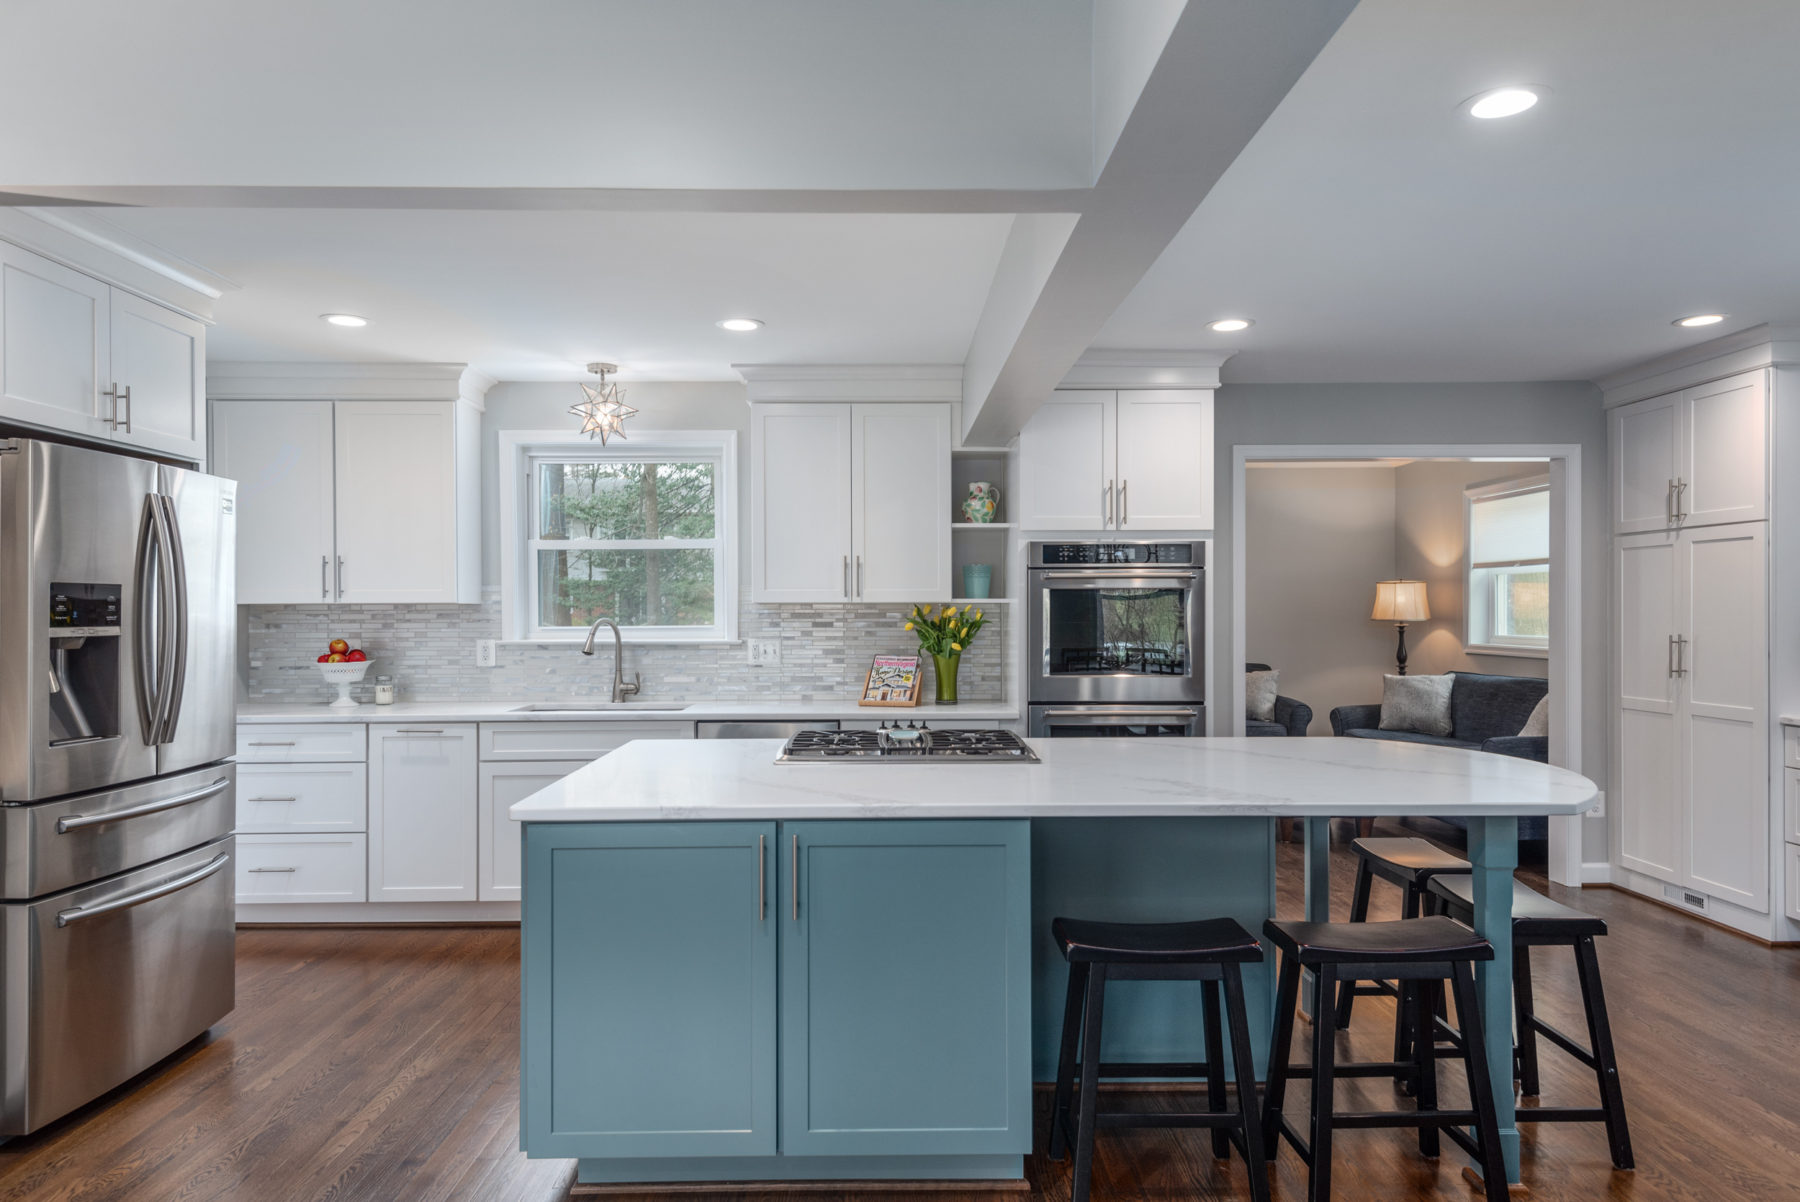 beautiful white and pale blue kitchen remodel in Fairfax, Virginia